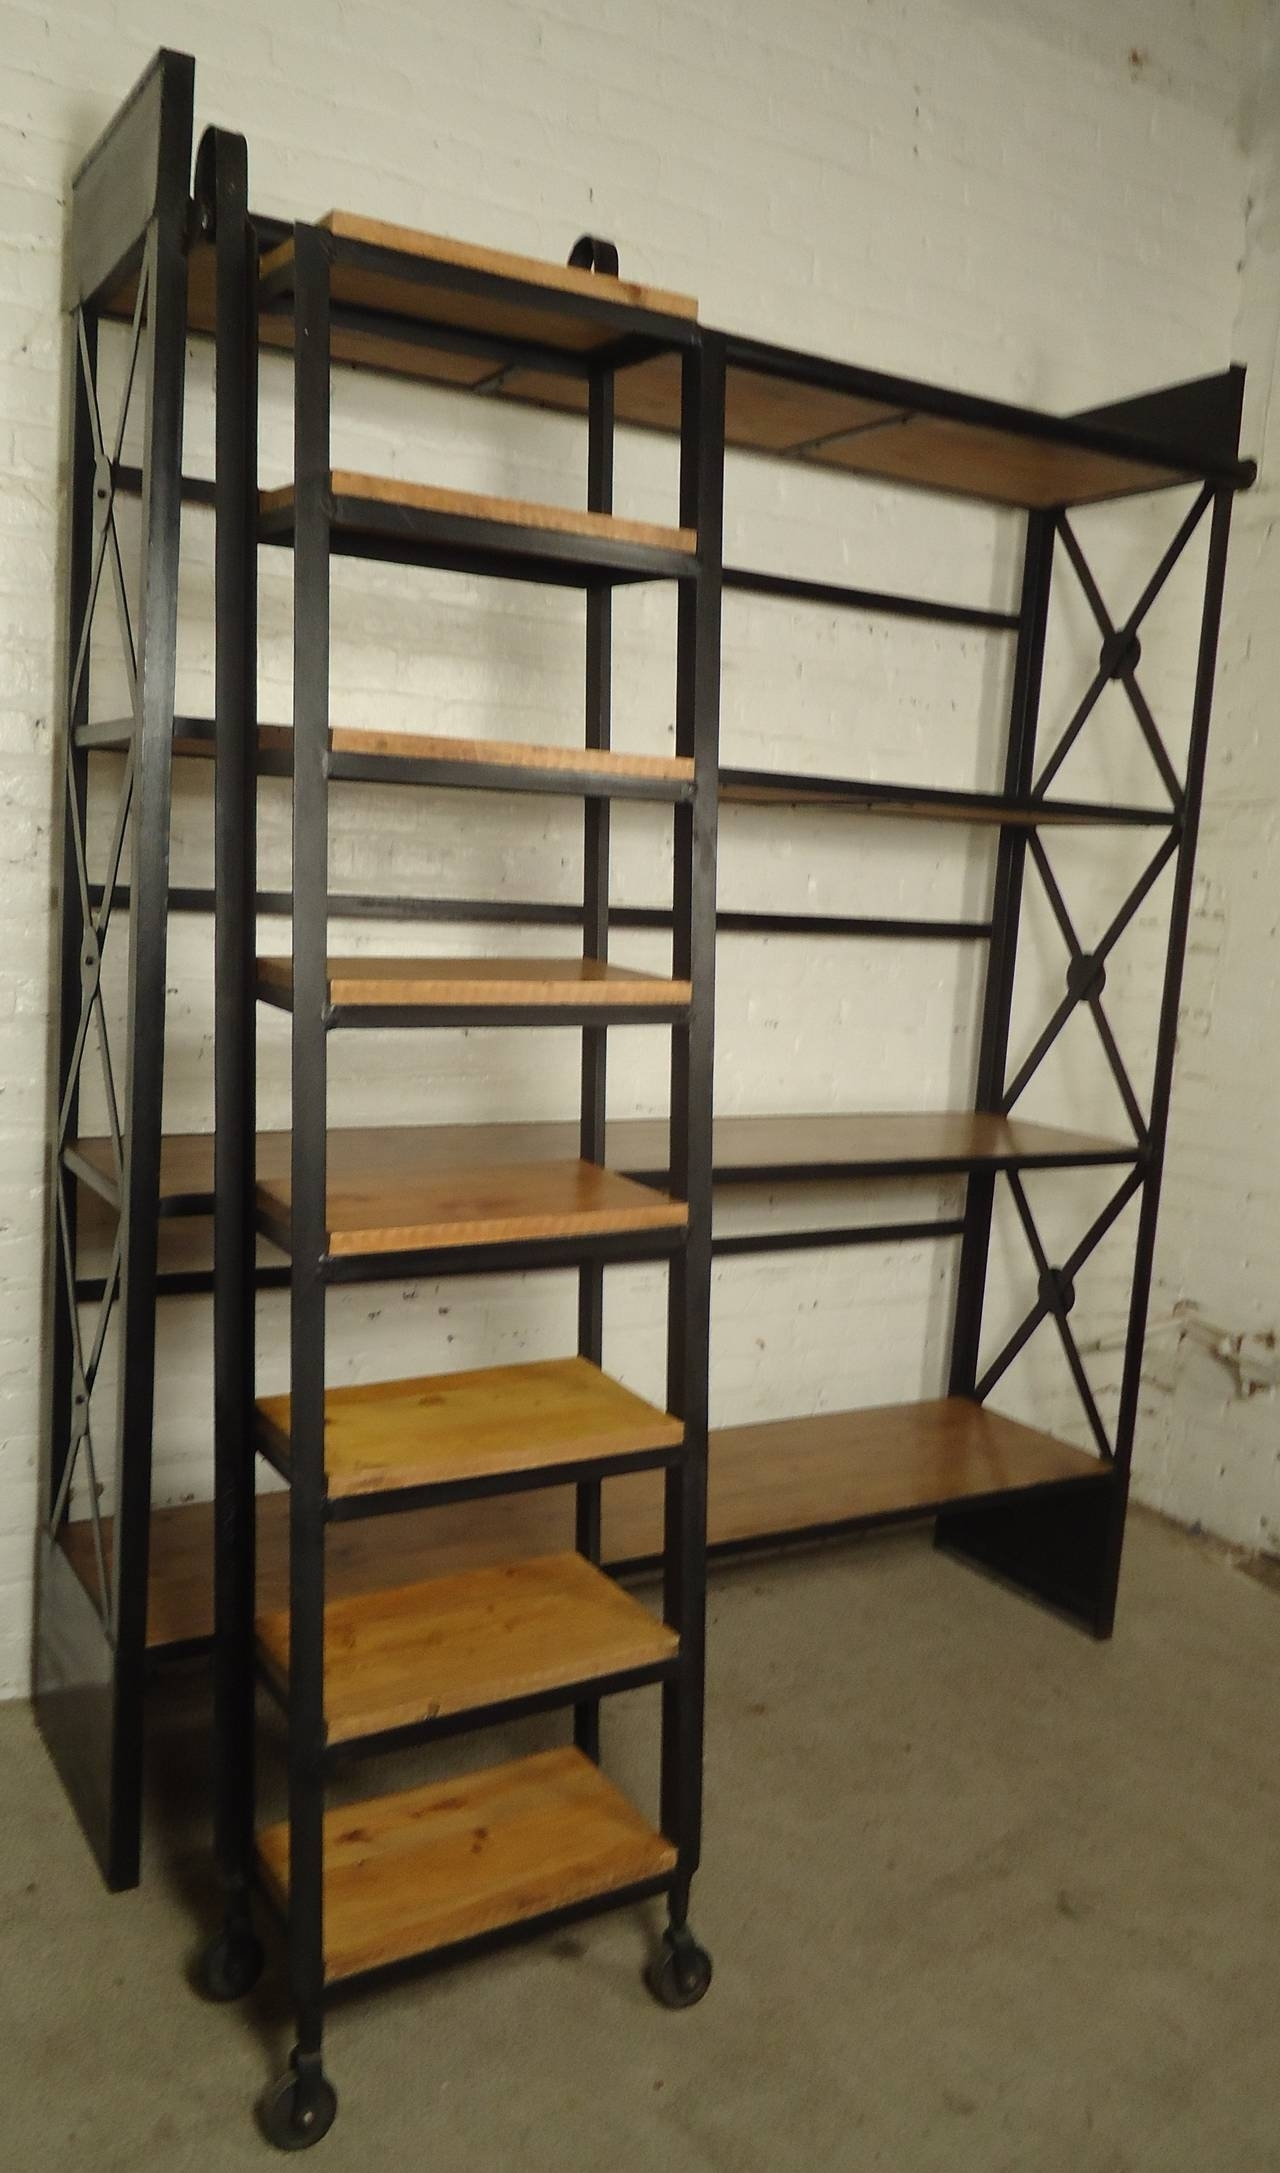 Wooden Shelving Units Throughout Most Up To Date Industrial Wood And Iron Shelving Unit With Sliding Ladder At 1stdibs (View 13 of 15)